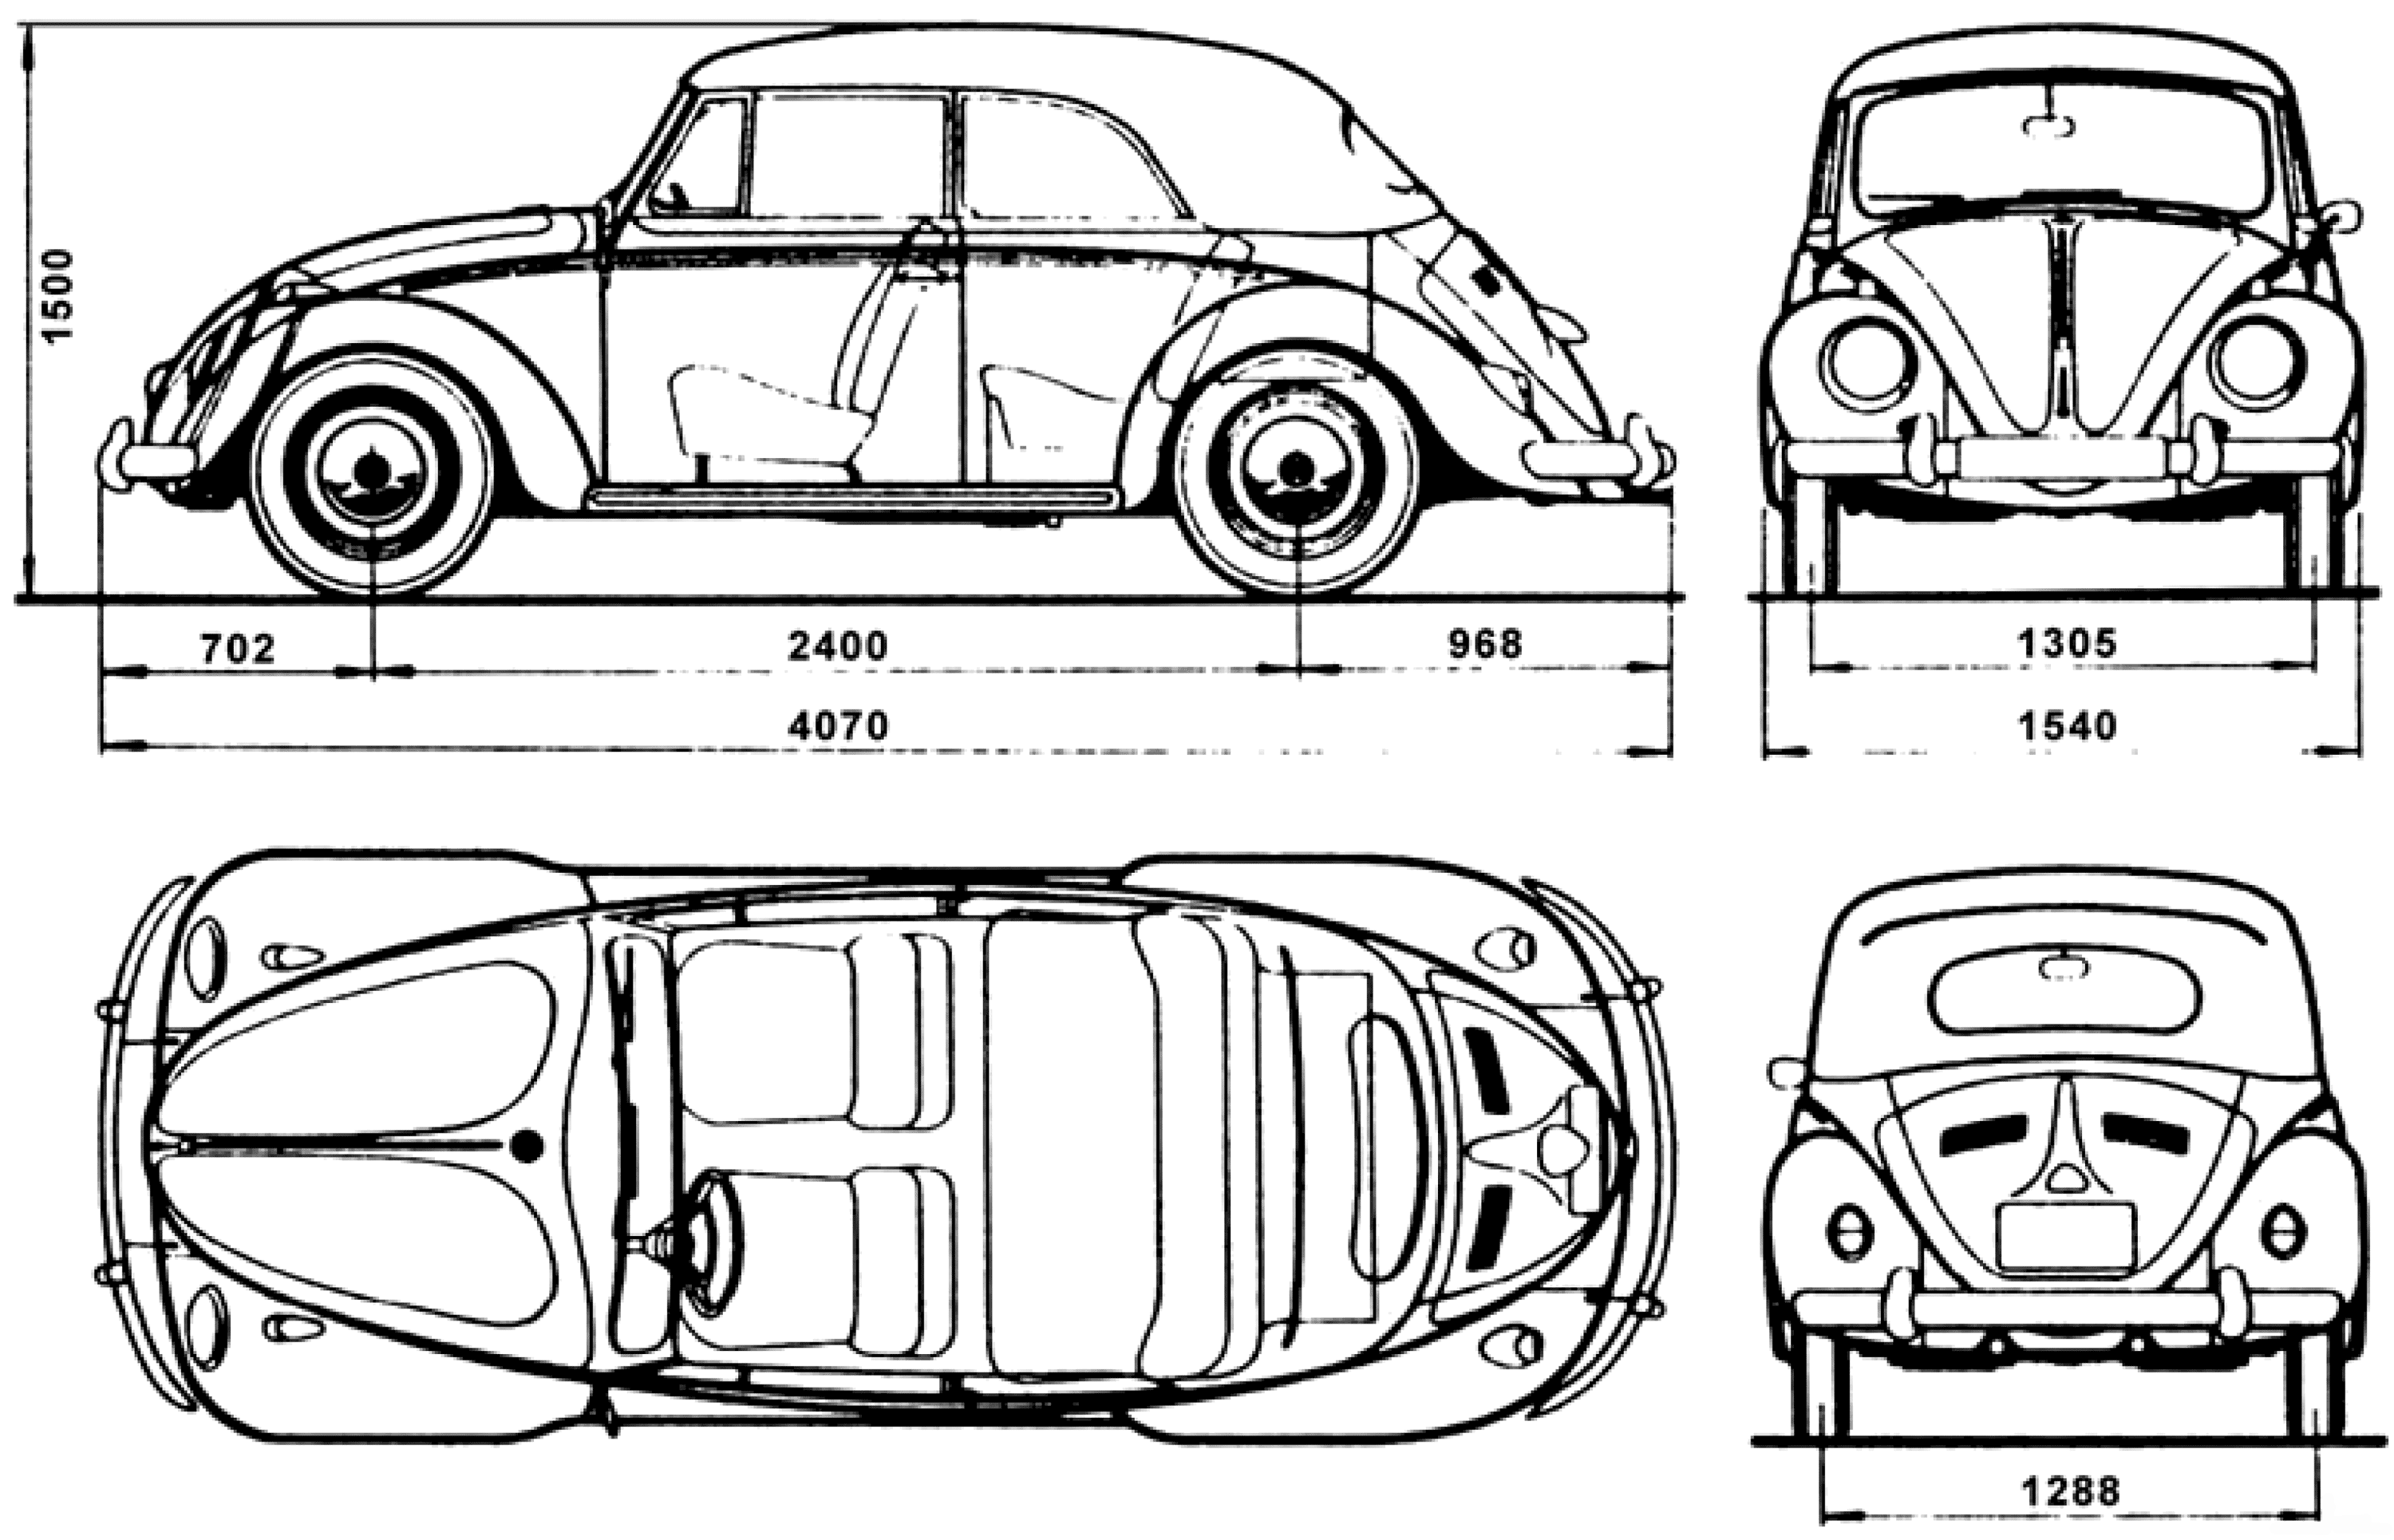 Volkswagen Beetle blueprint